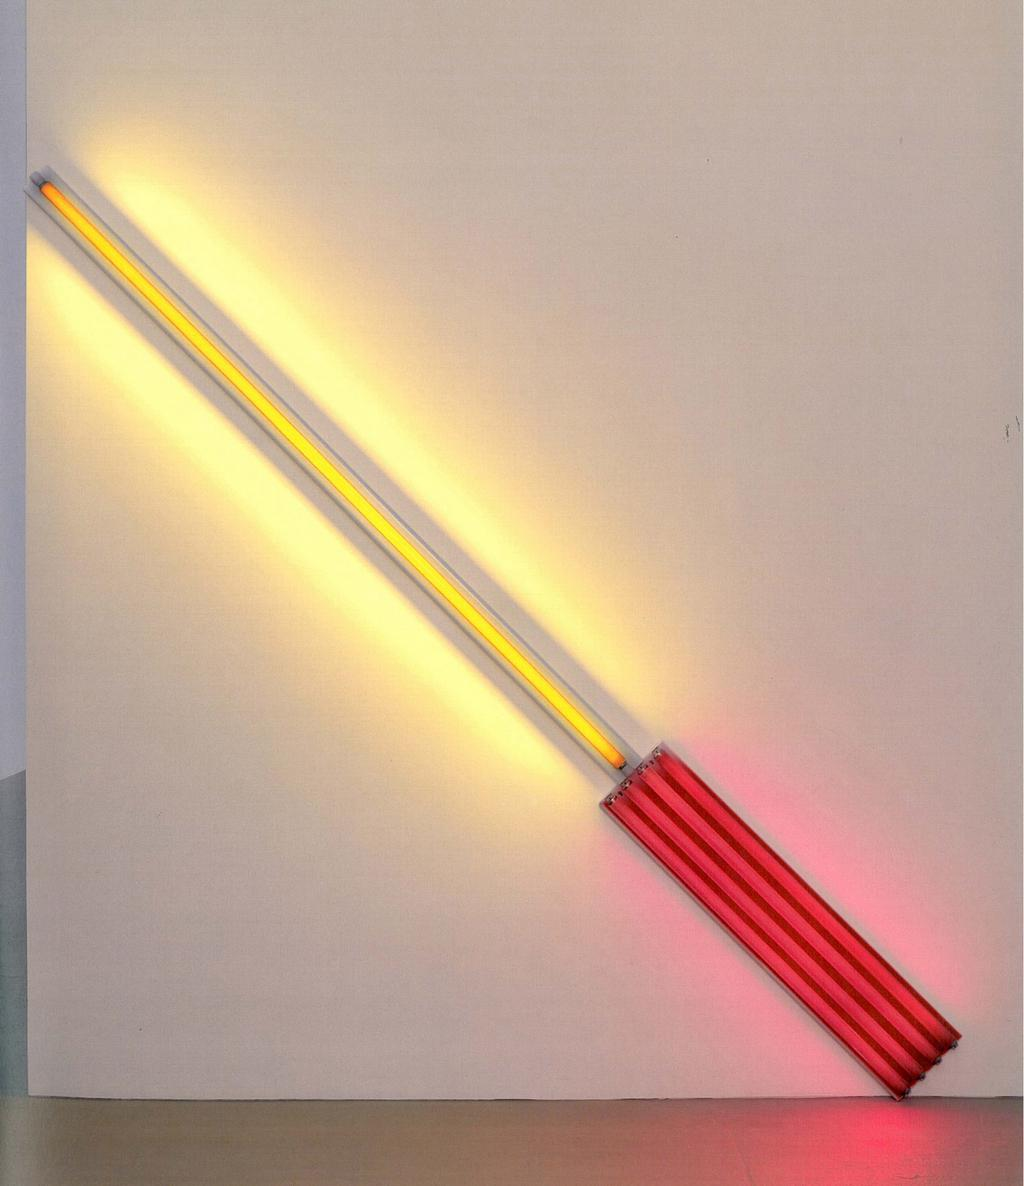 Dan Flavin / alternate diagonals of March 2, 1964 (to Don Judd), 1964